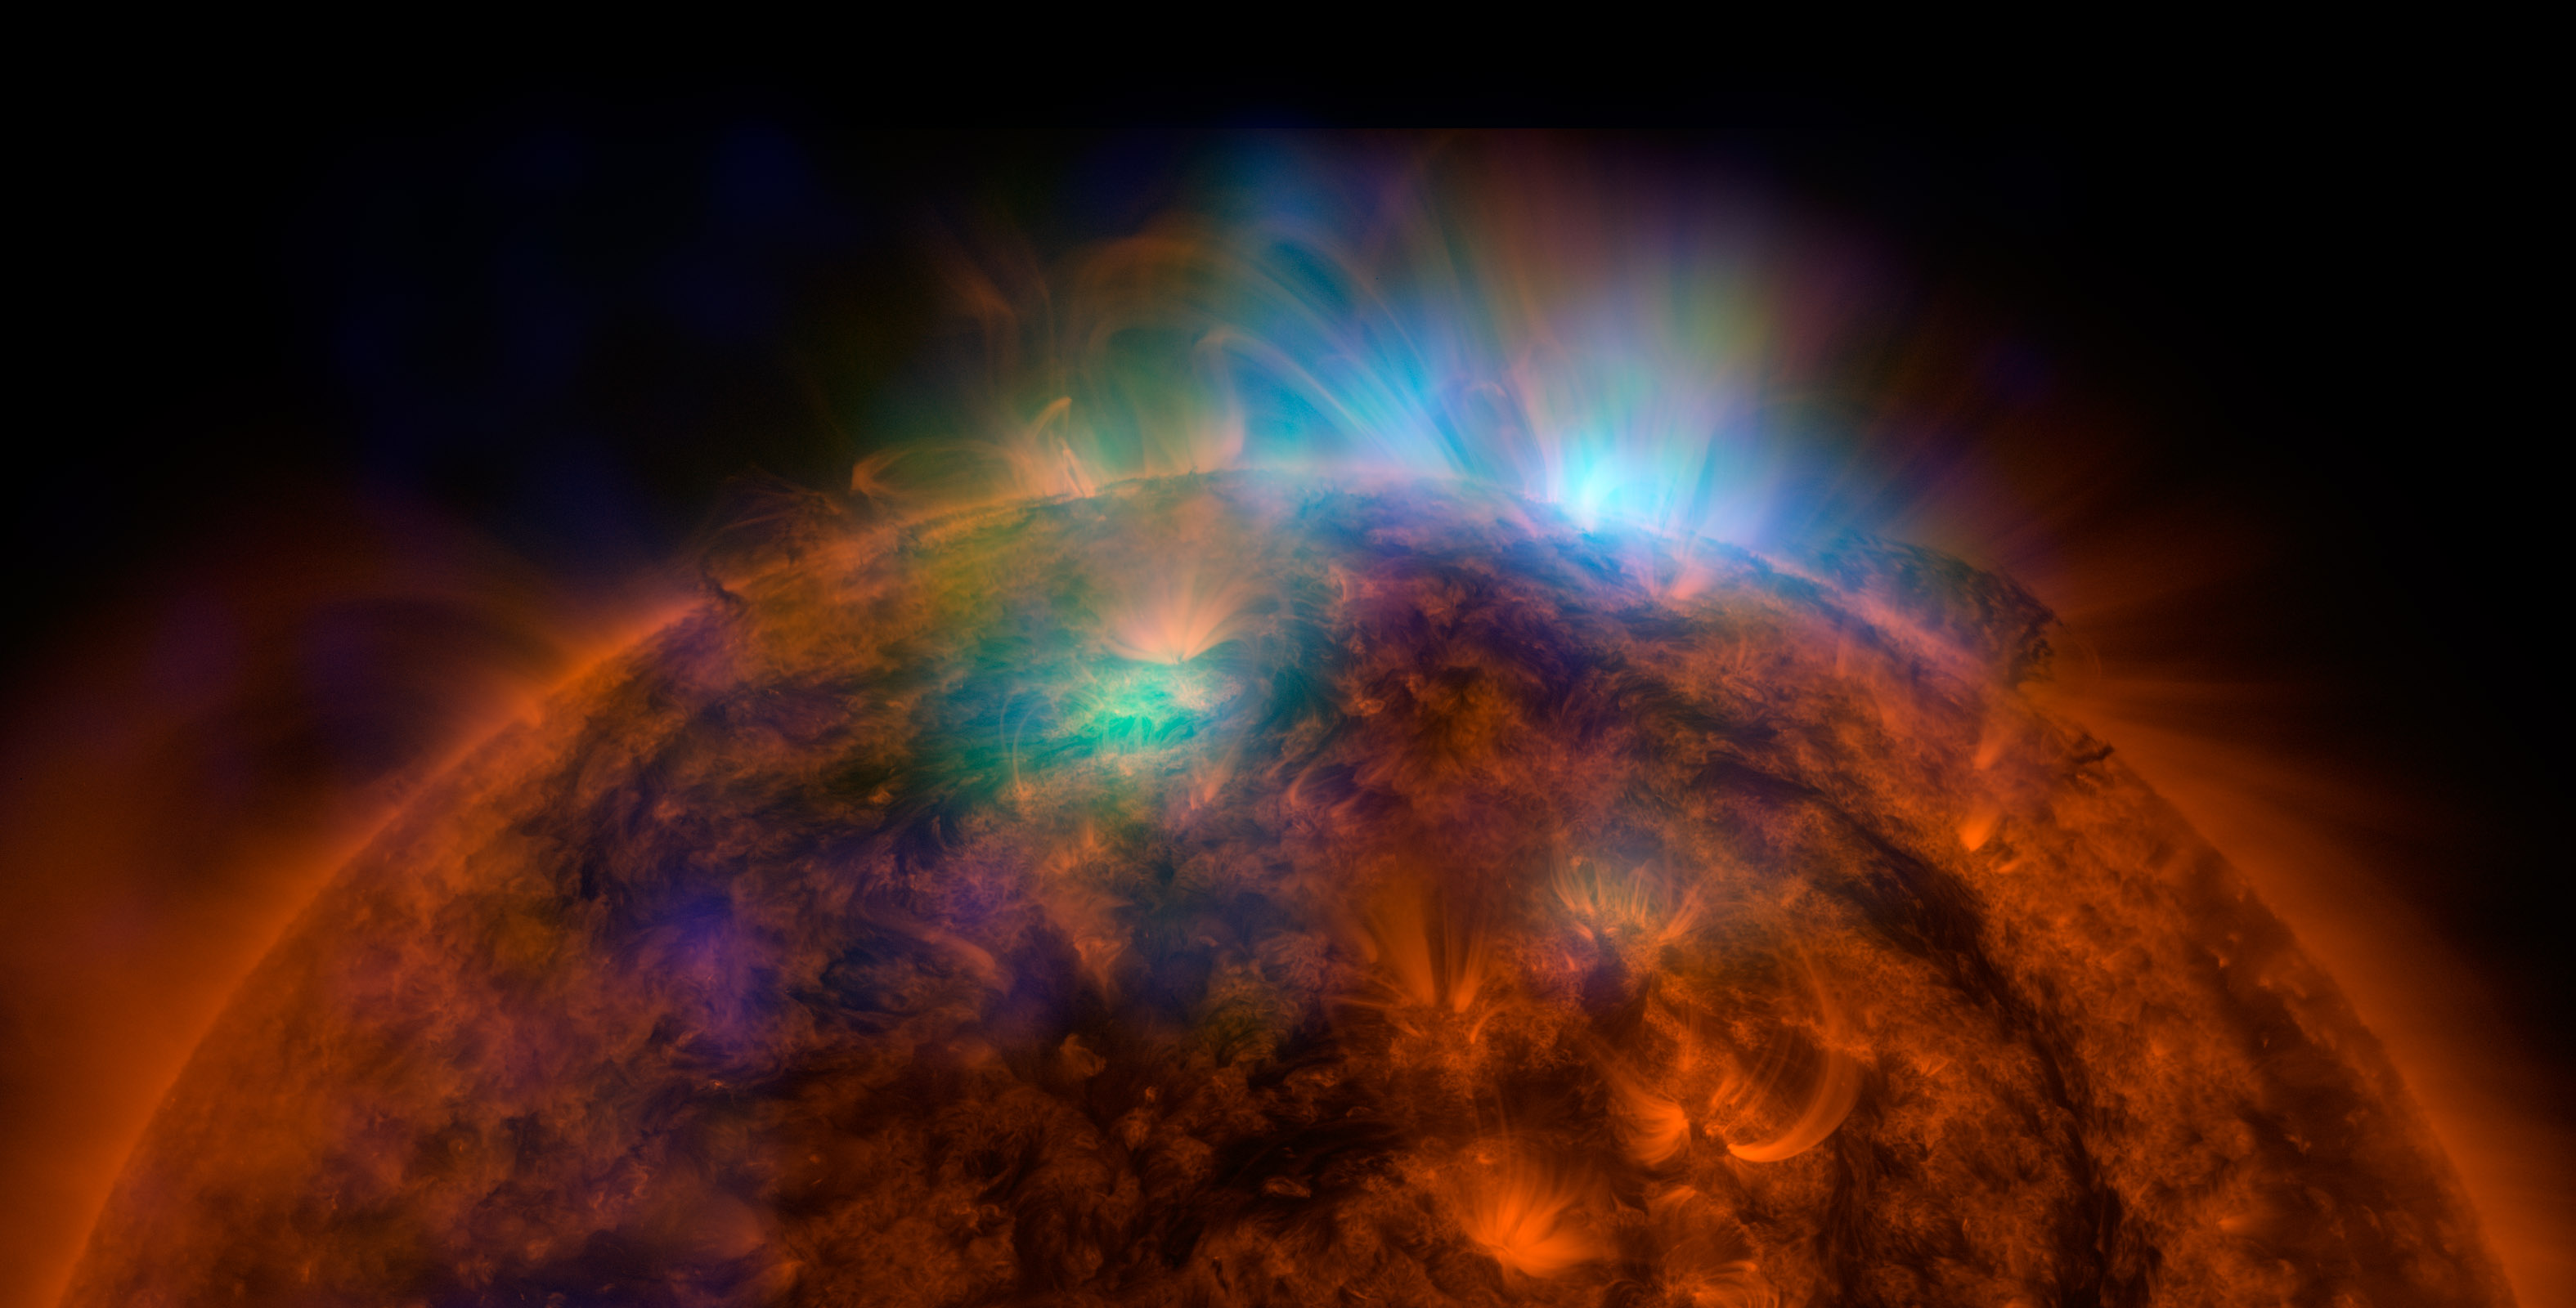 An amazing first image of the sun from NASA's NuSTAR, Nuclear Spectroscopic Telescope Array